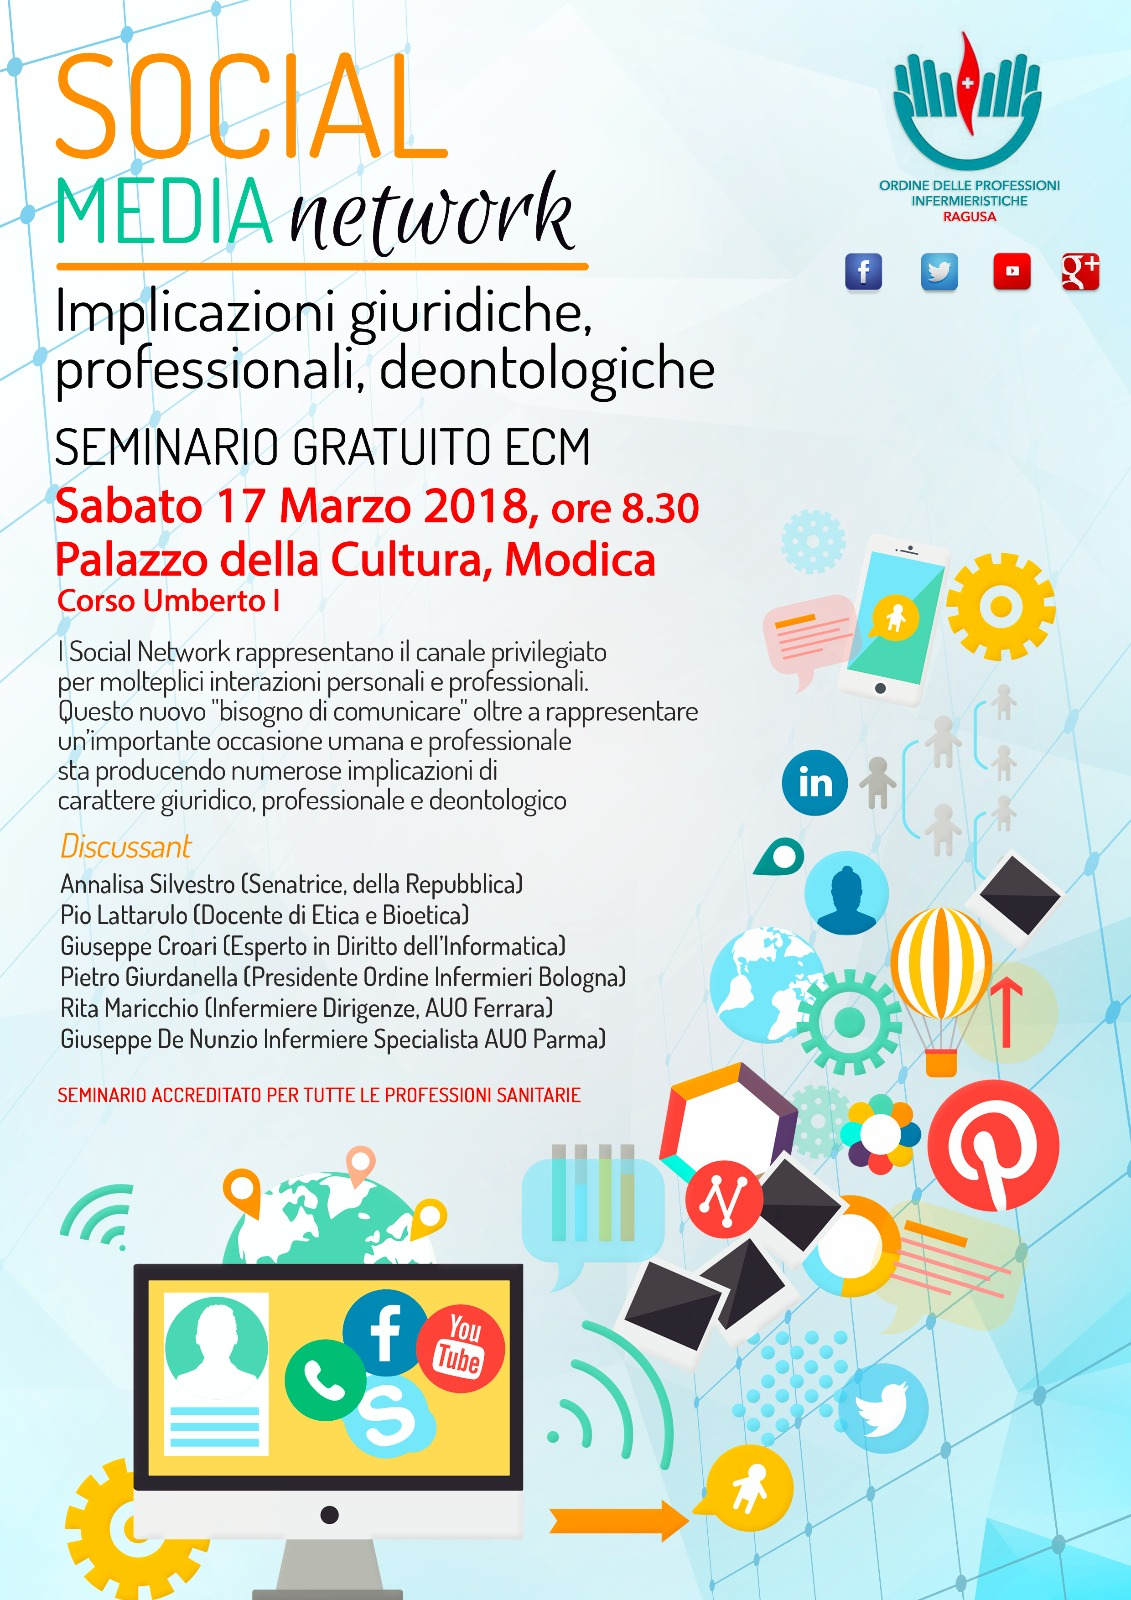 Evento ECM gratuito. Social, media e network.